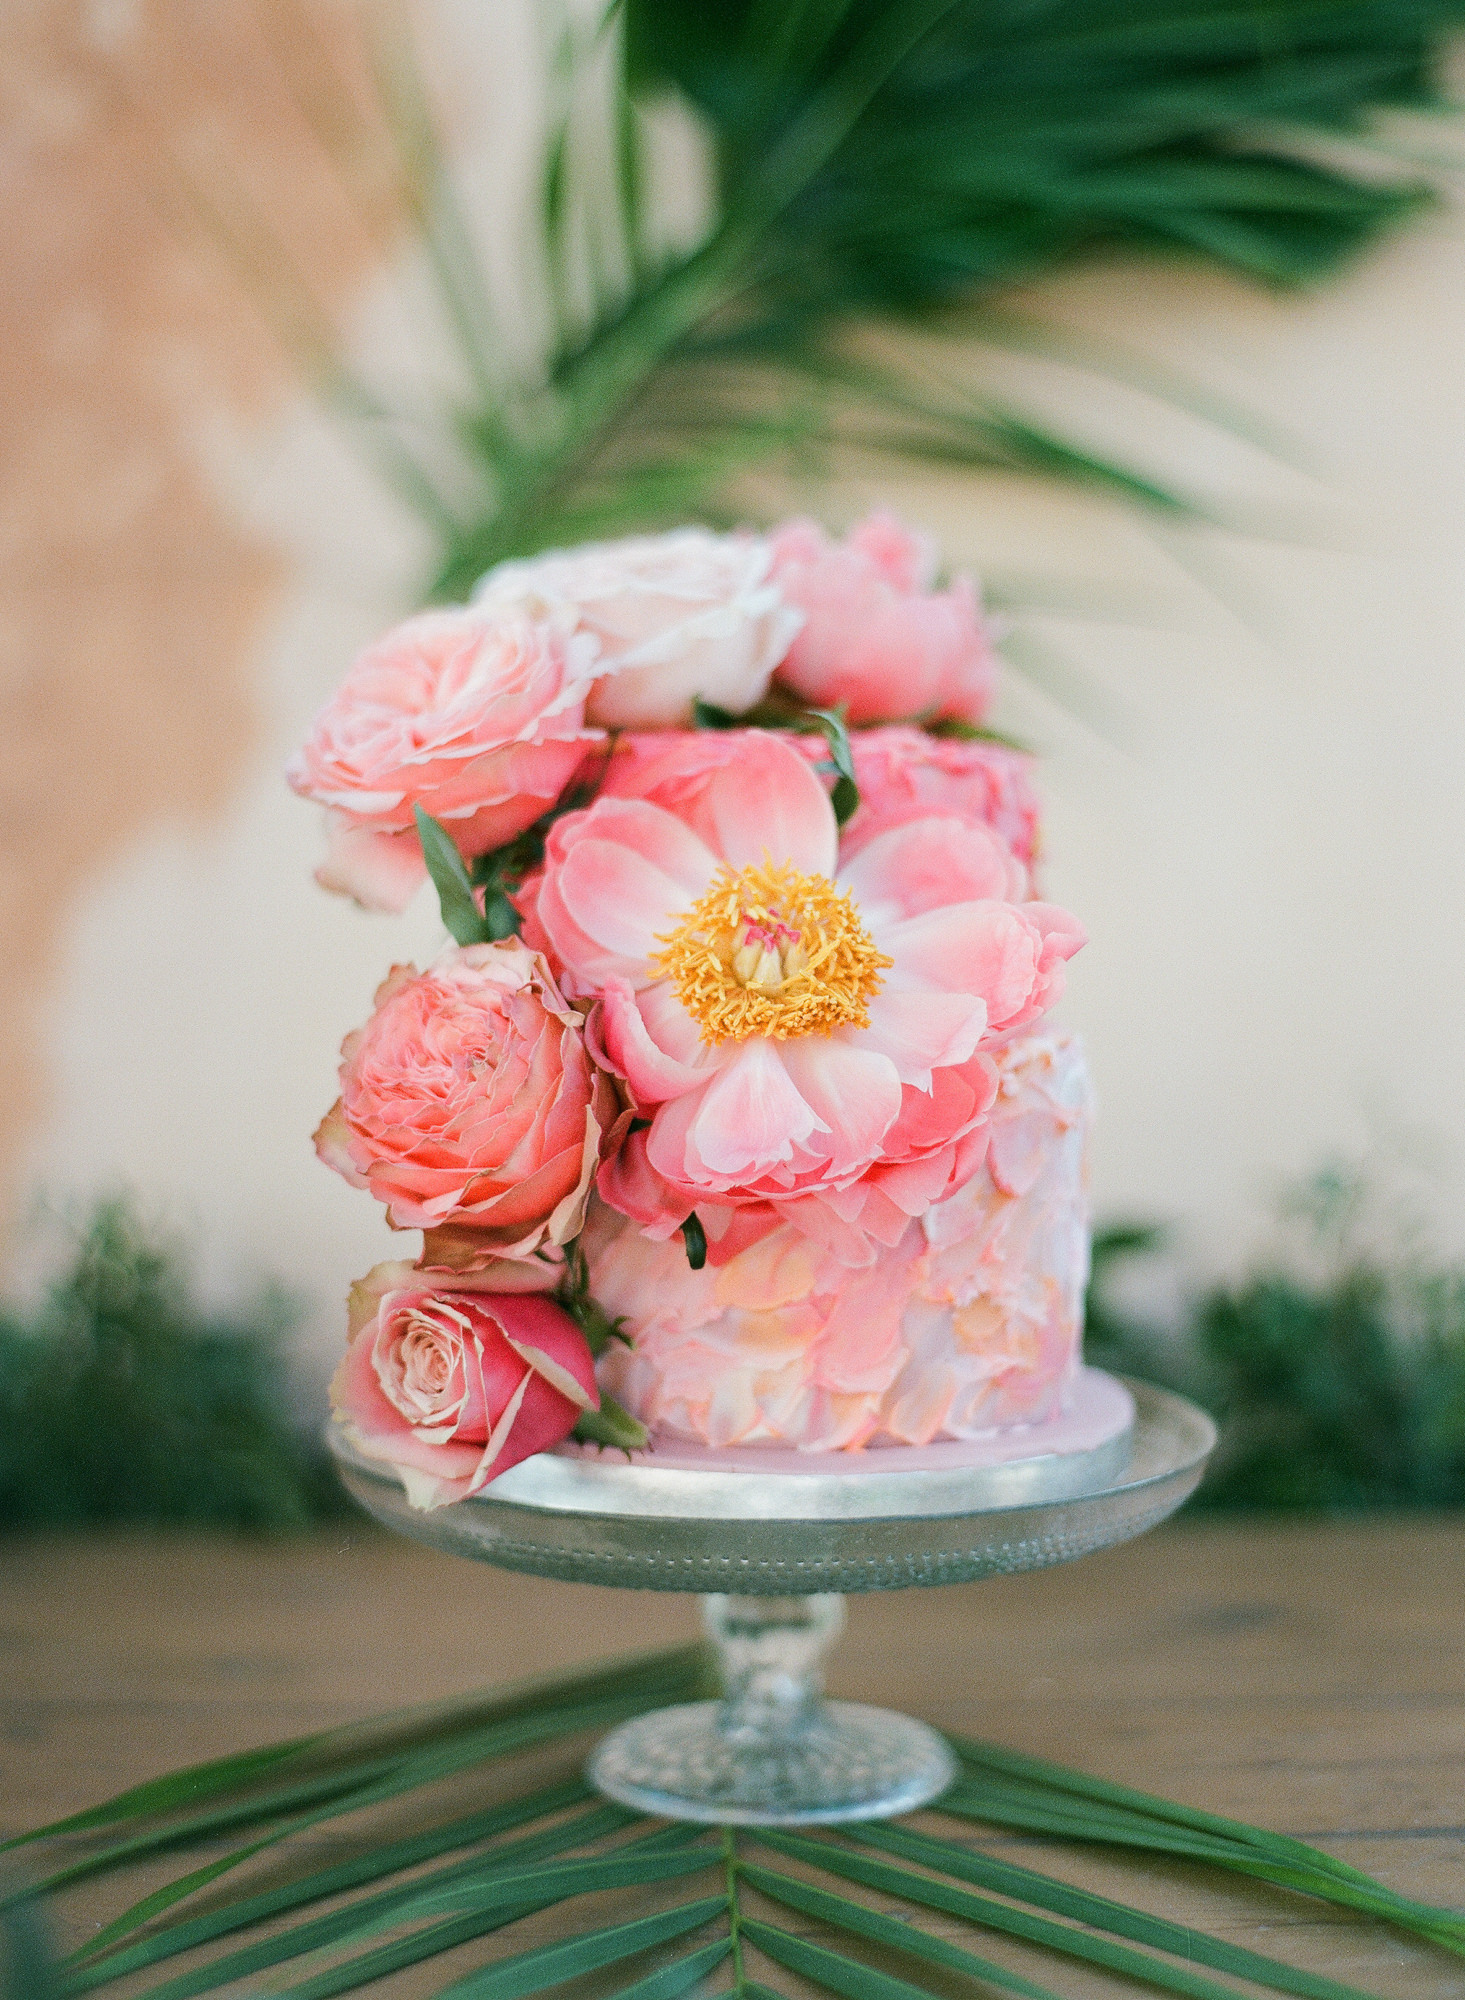 Wedding cake with fresh pink peonies - Gianluca Adovasio Photography